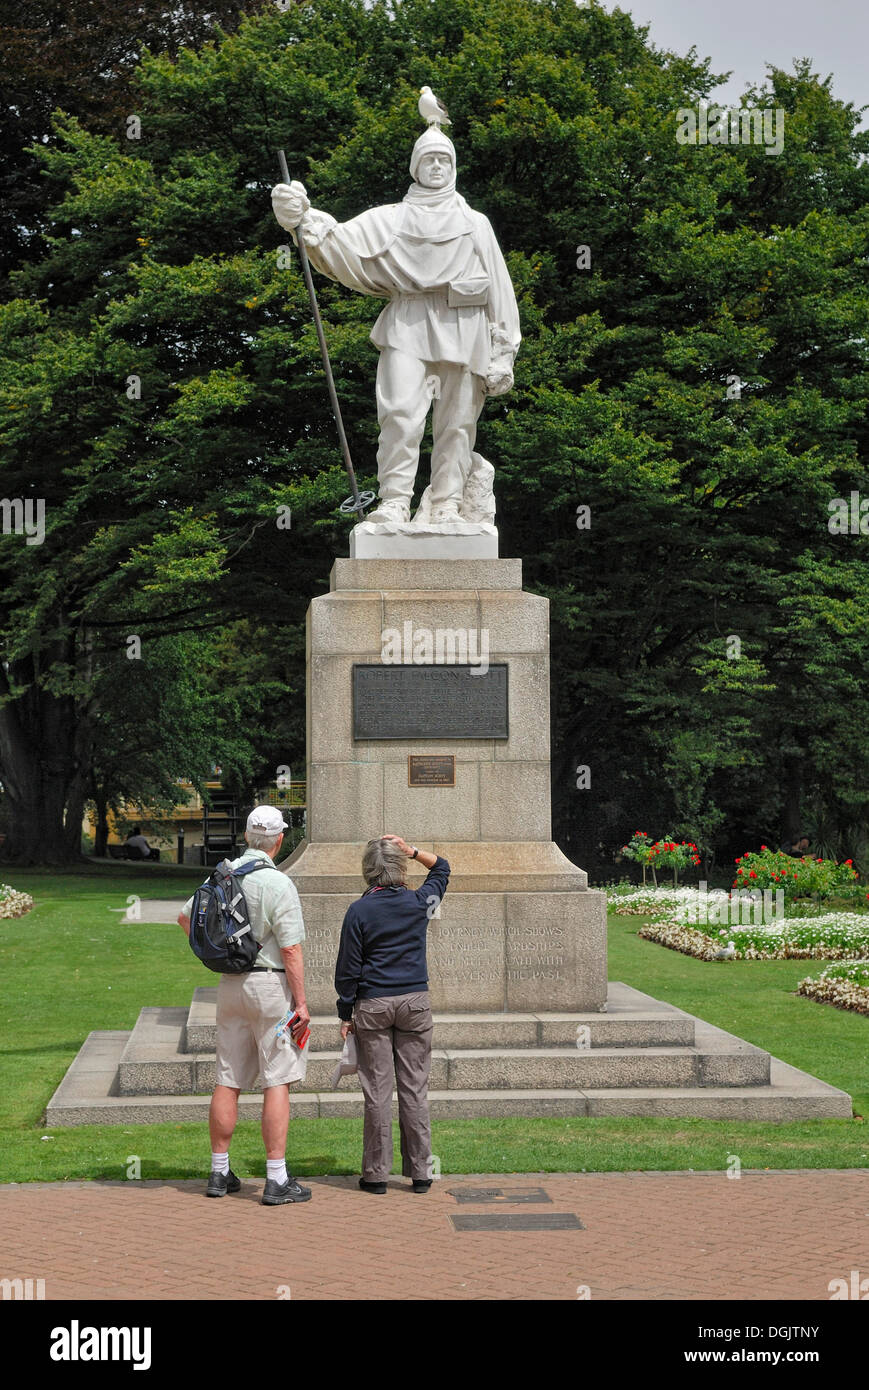 Monument to the Antarctic explorer Robert F. Scott, with tourists and seagulls, Christchurch, South Island, New Zealand - Stock Image